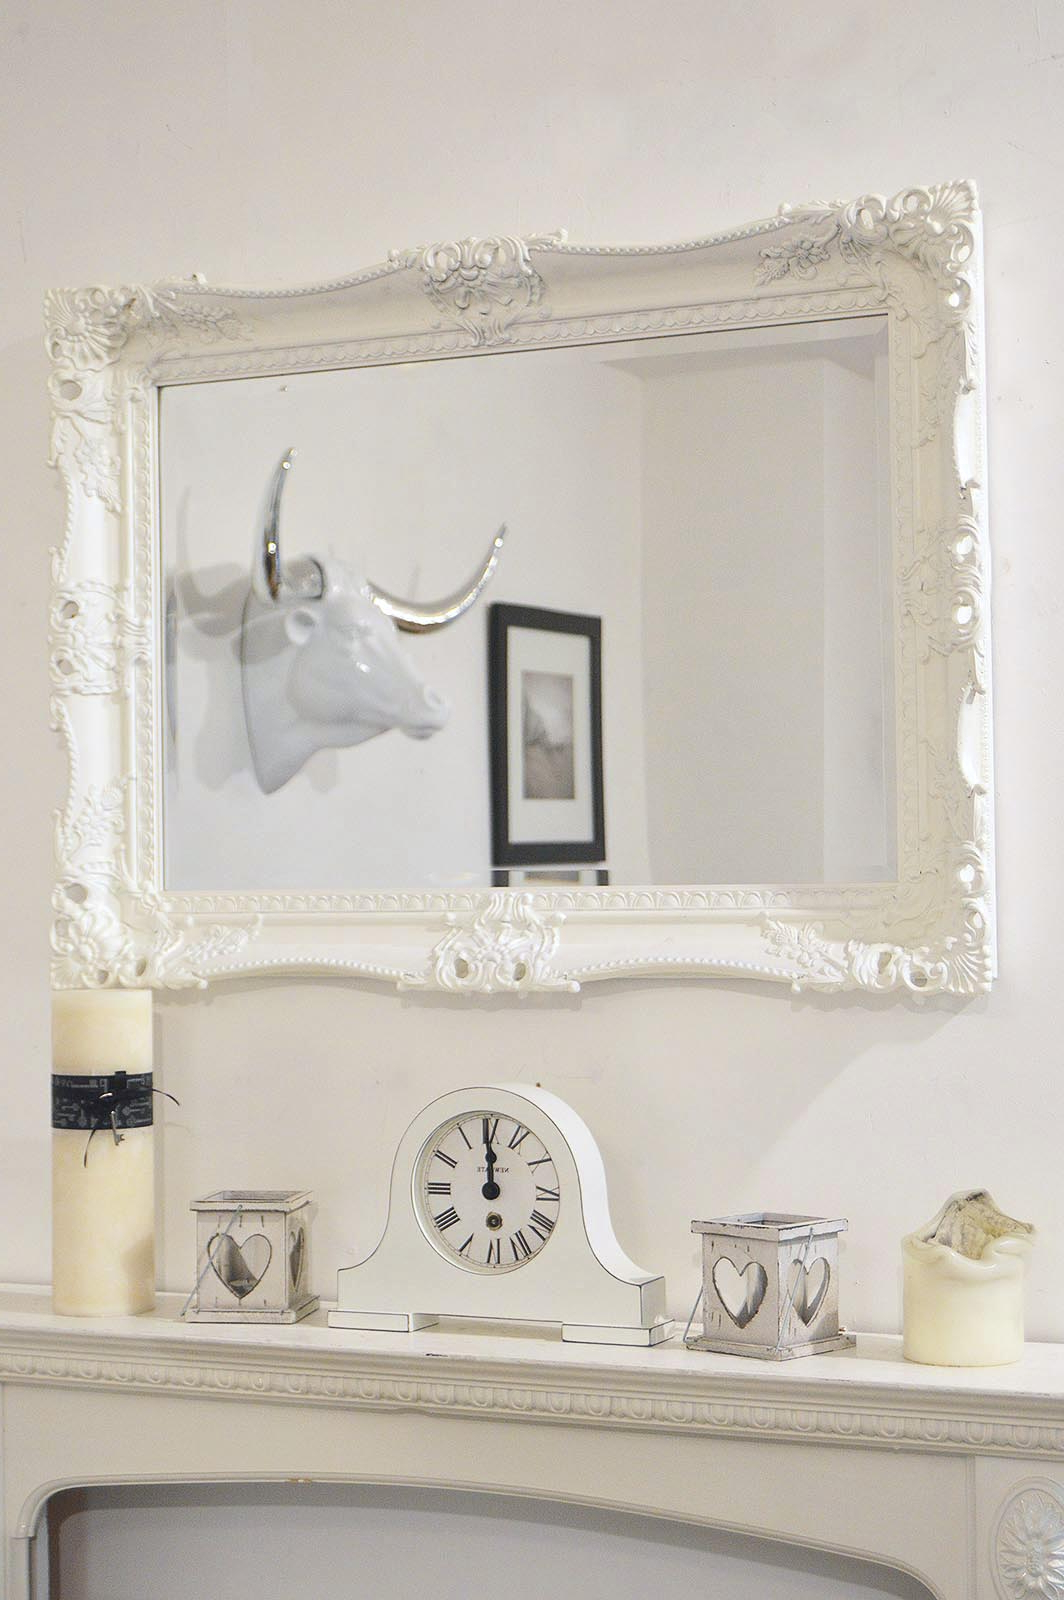 Big Wall Mirrors Within 2020 Details About Large White Very Ornate Antique Design Big Wall Mirror 3ft1 X  2ft3 94cm X 68cm (View 20 of 20)